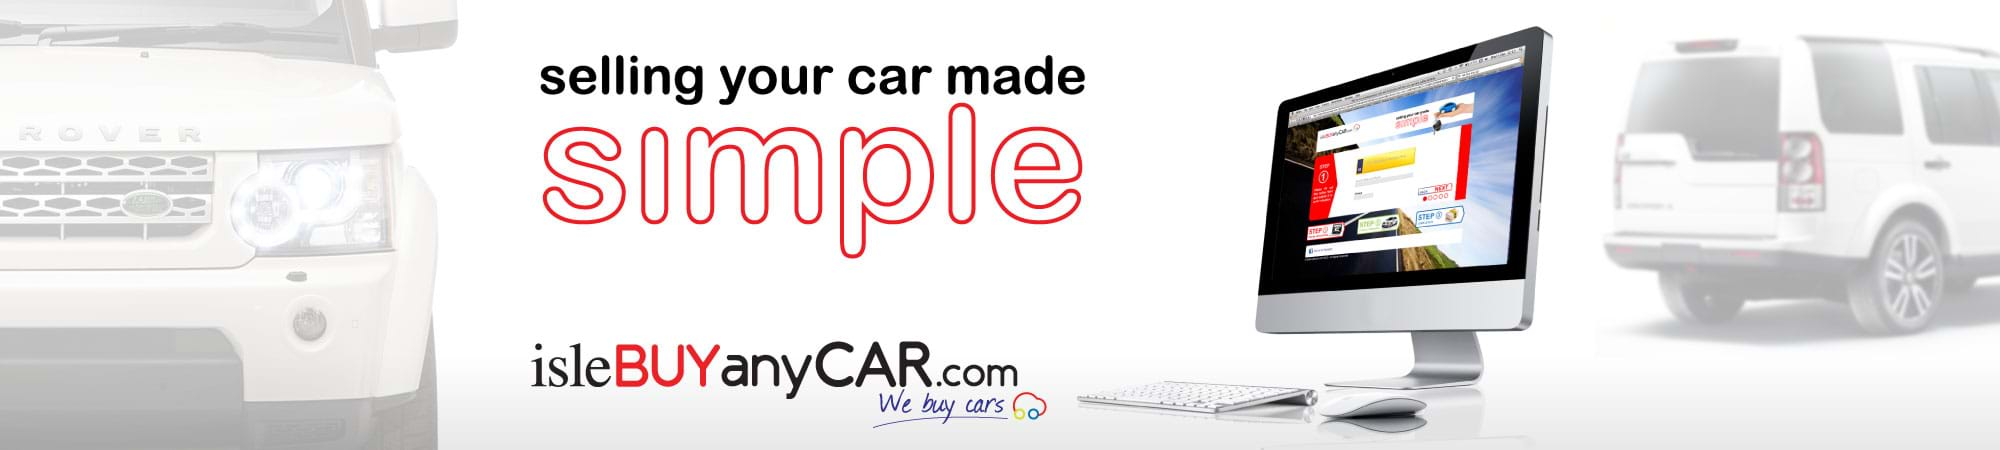 isleBUYanyCAR.com Selling your car made simple